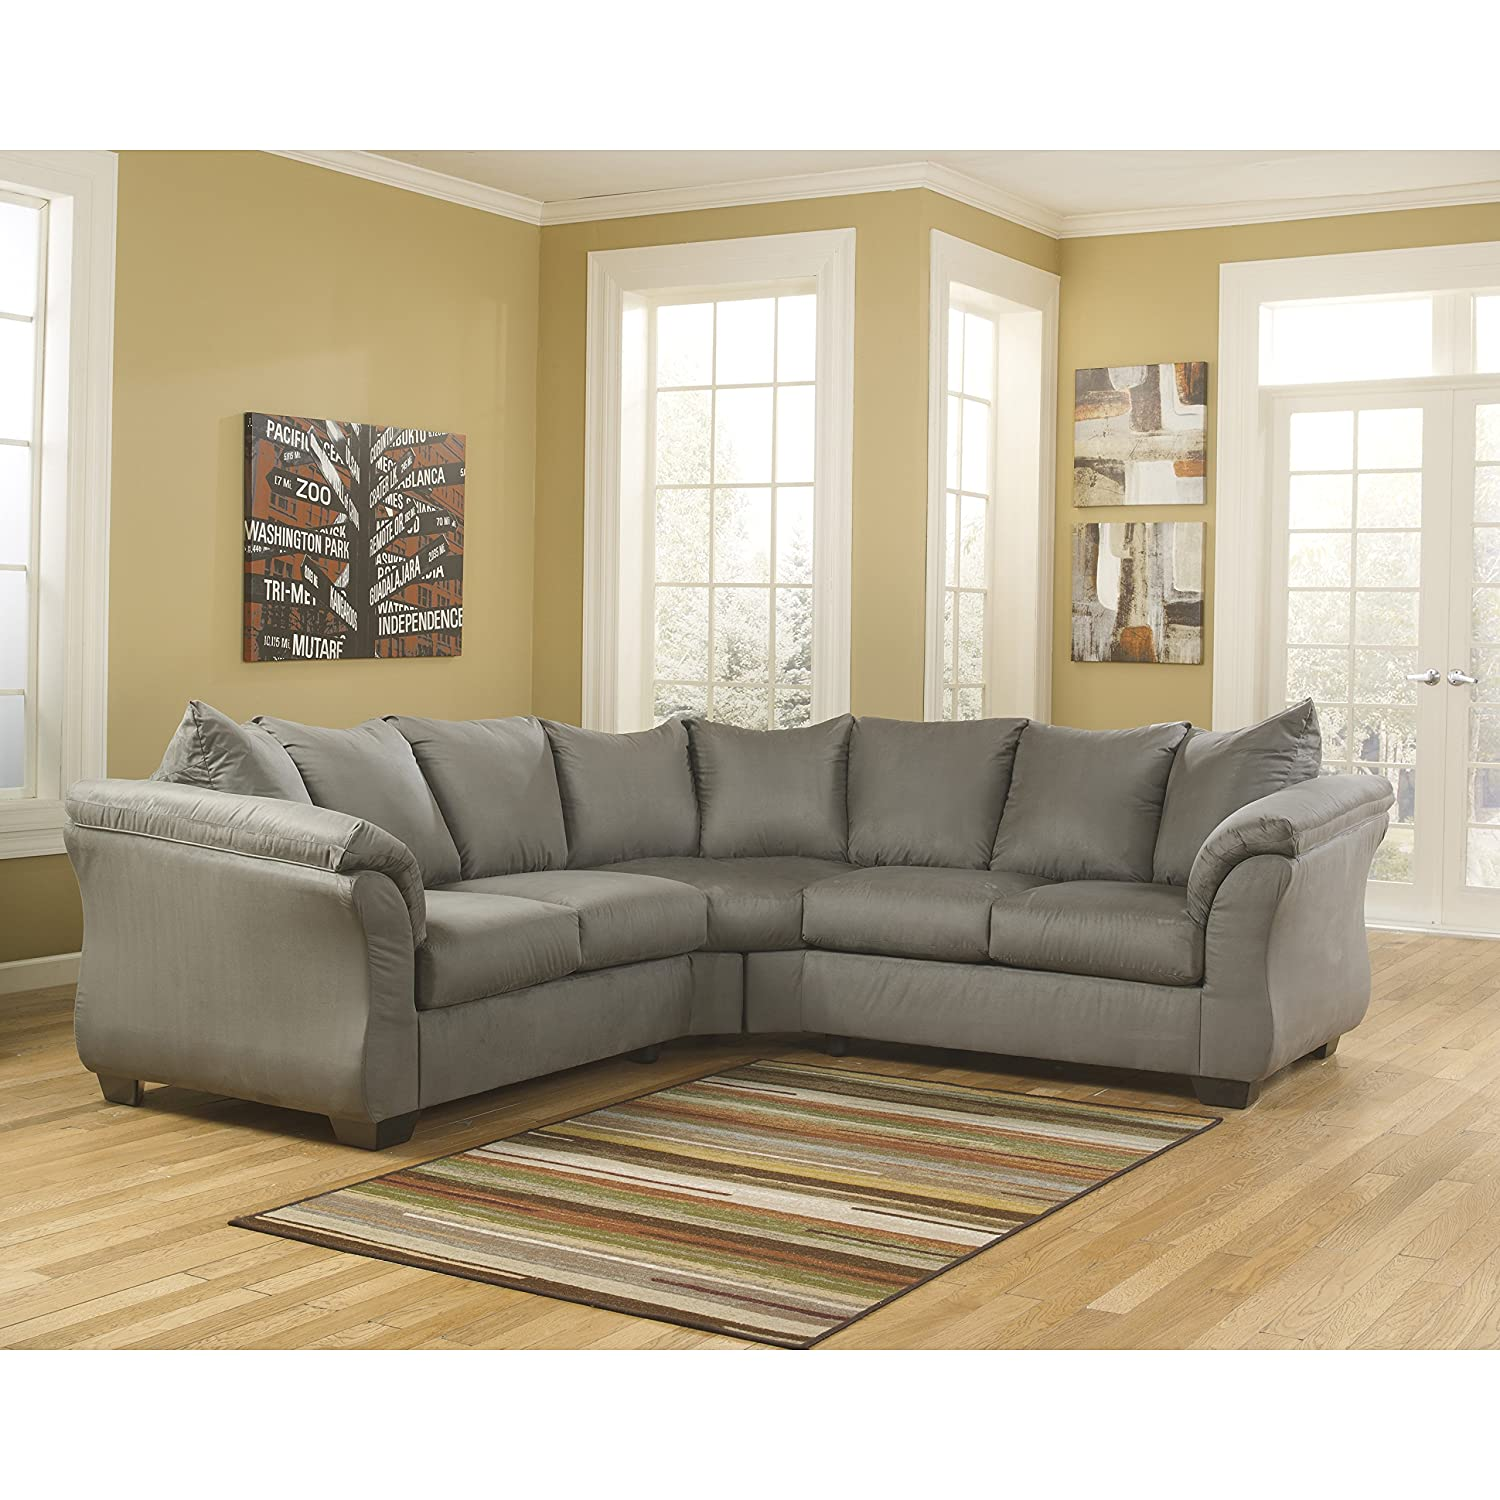 Wondrous Flash Furniture Signature Design By Ashley Darcy Sectional In Cobblestone Microfiber Cjindustries Chair Design For Home Cjindustriesco